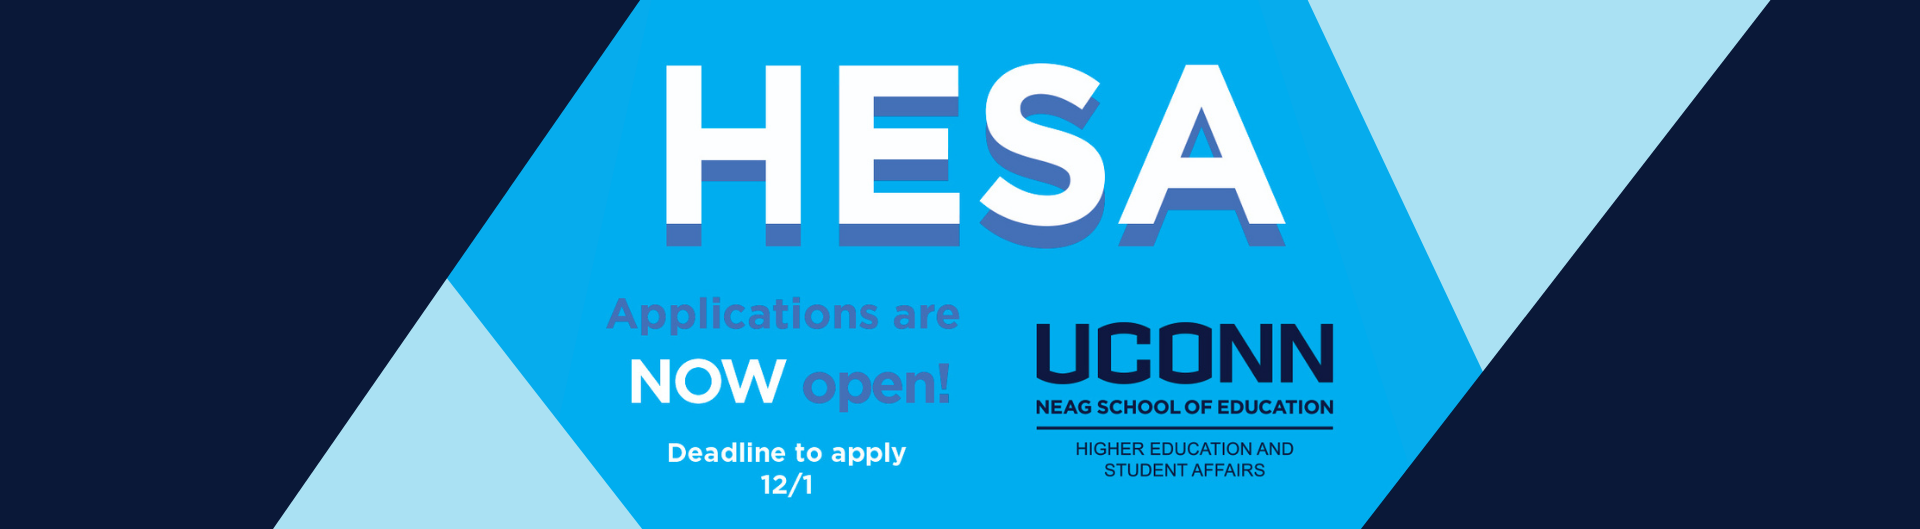 Text reads: HESA Applications are NOW open! Deadline to apply: 12/1